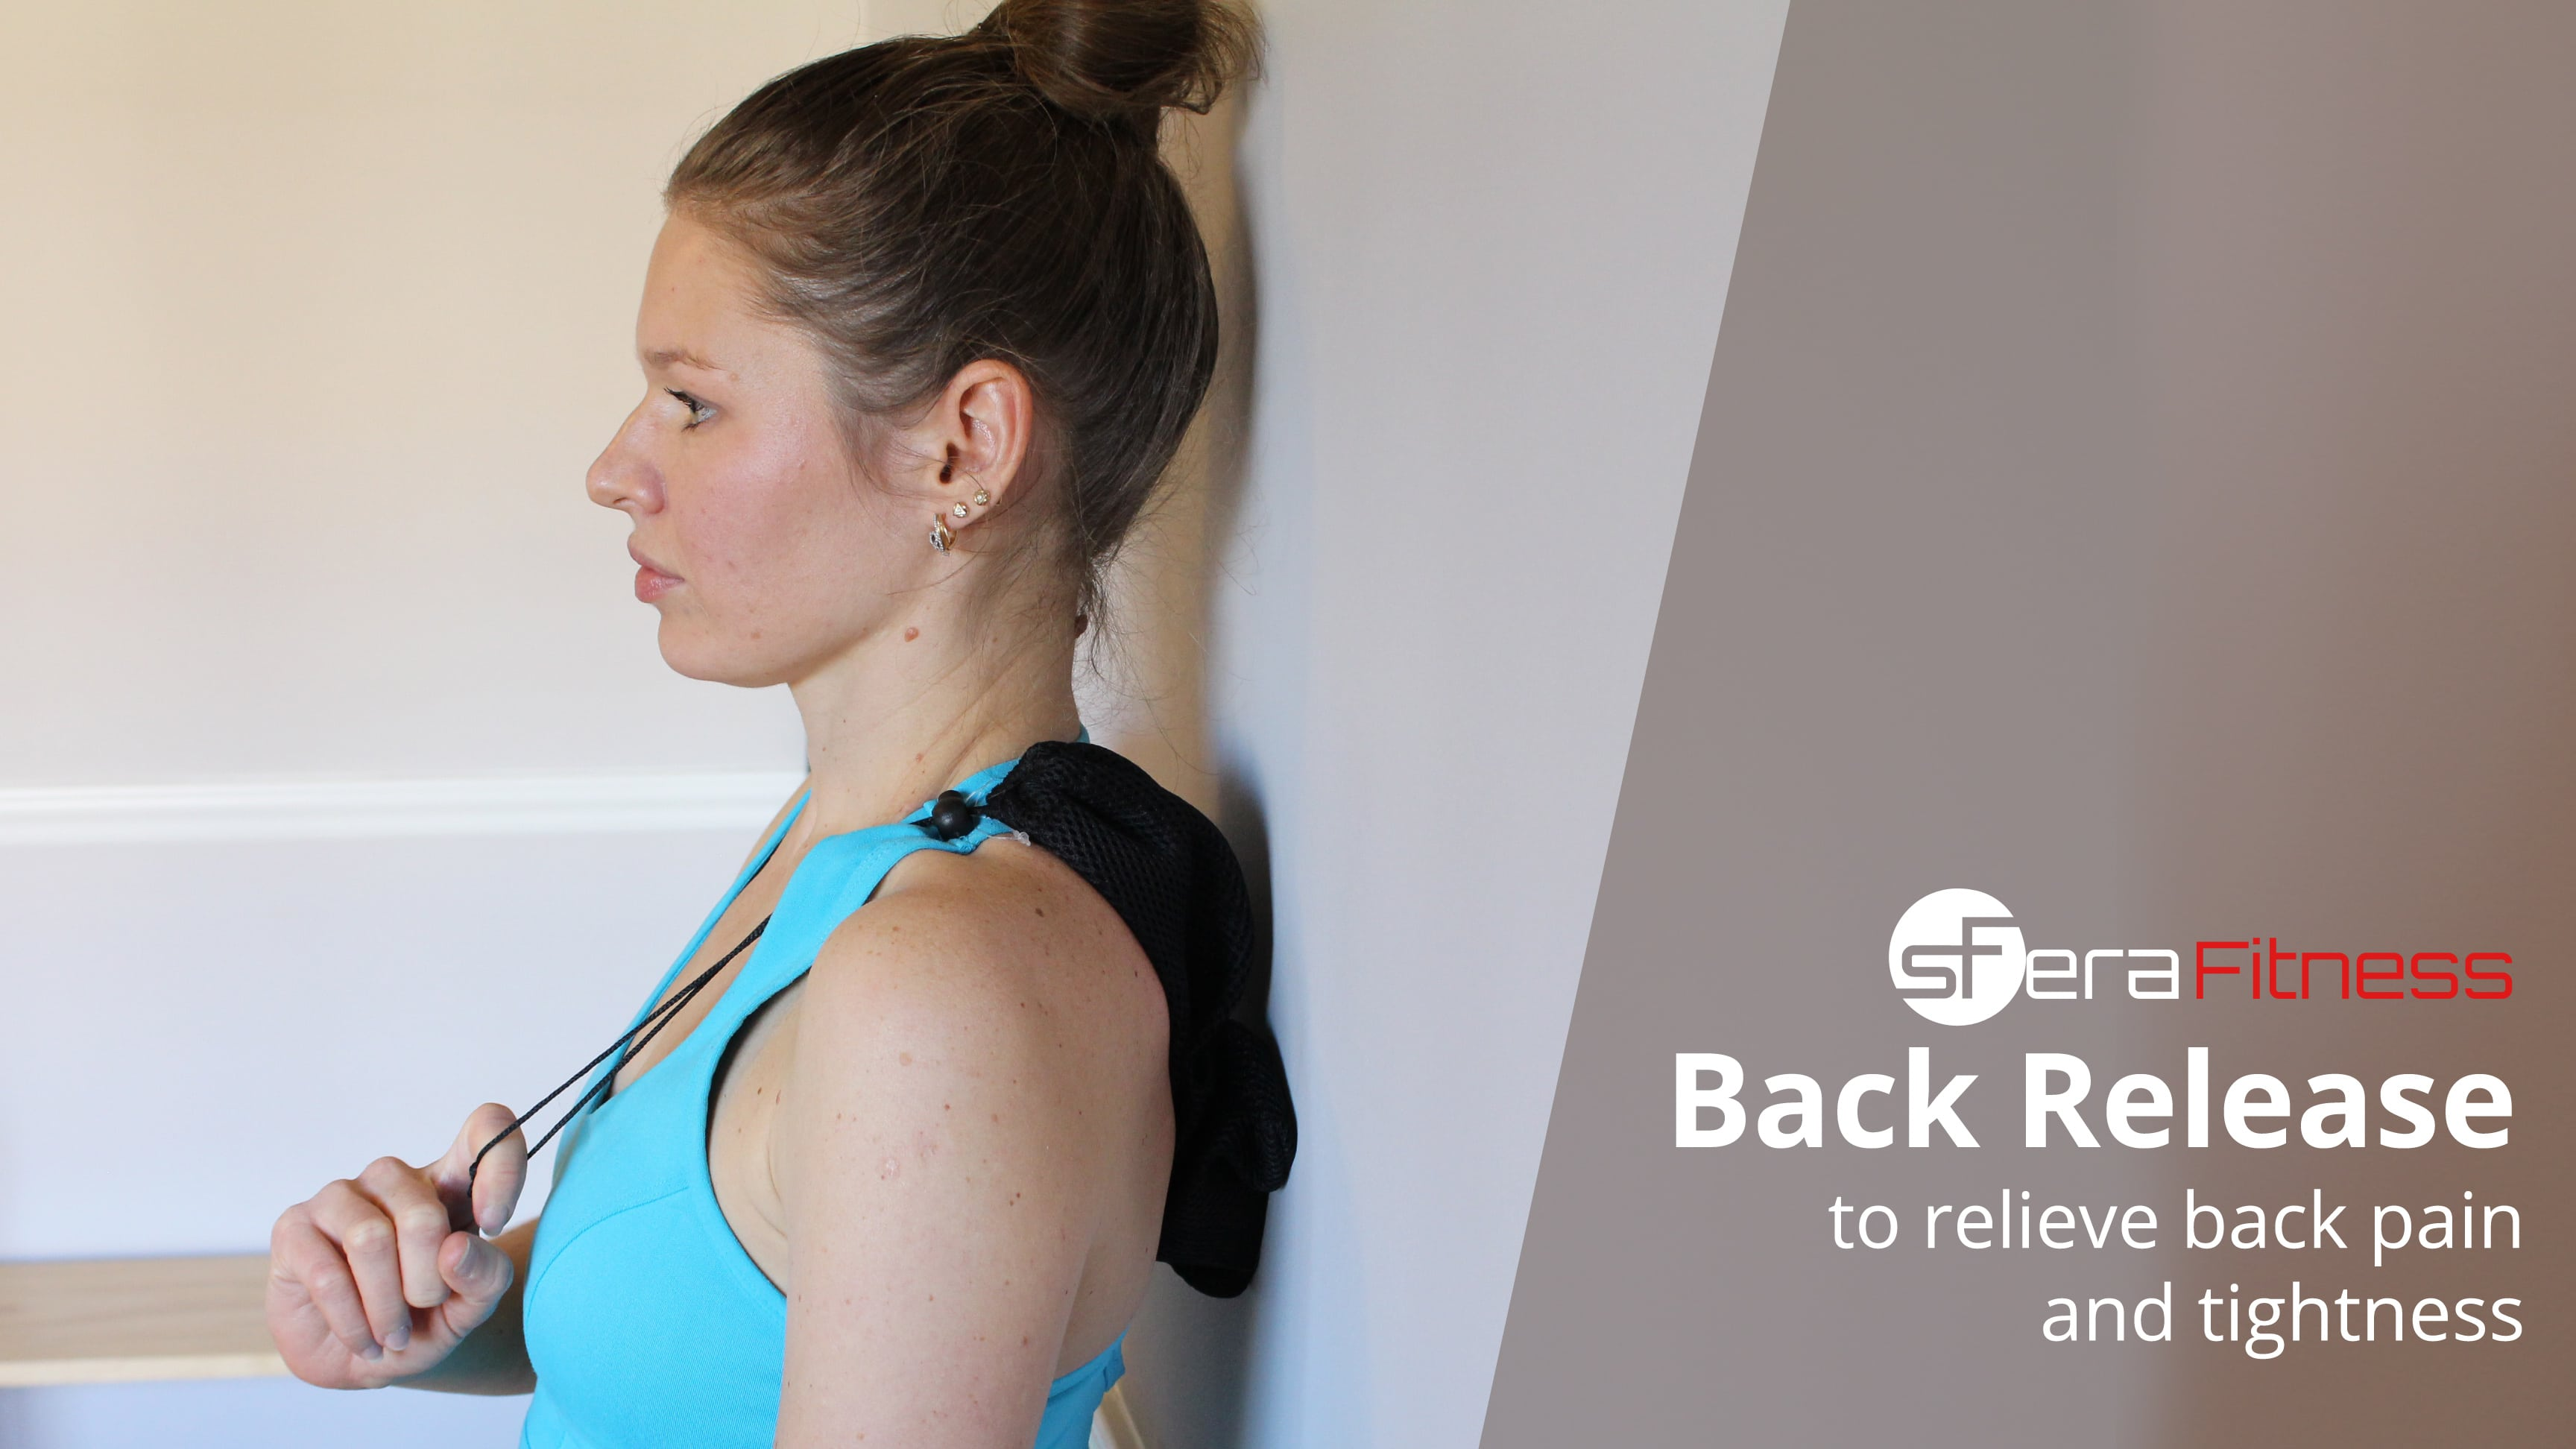 Do-It-Anywhere Back Release to Relieve Back Pain and Soreness Along the Spine